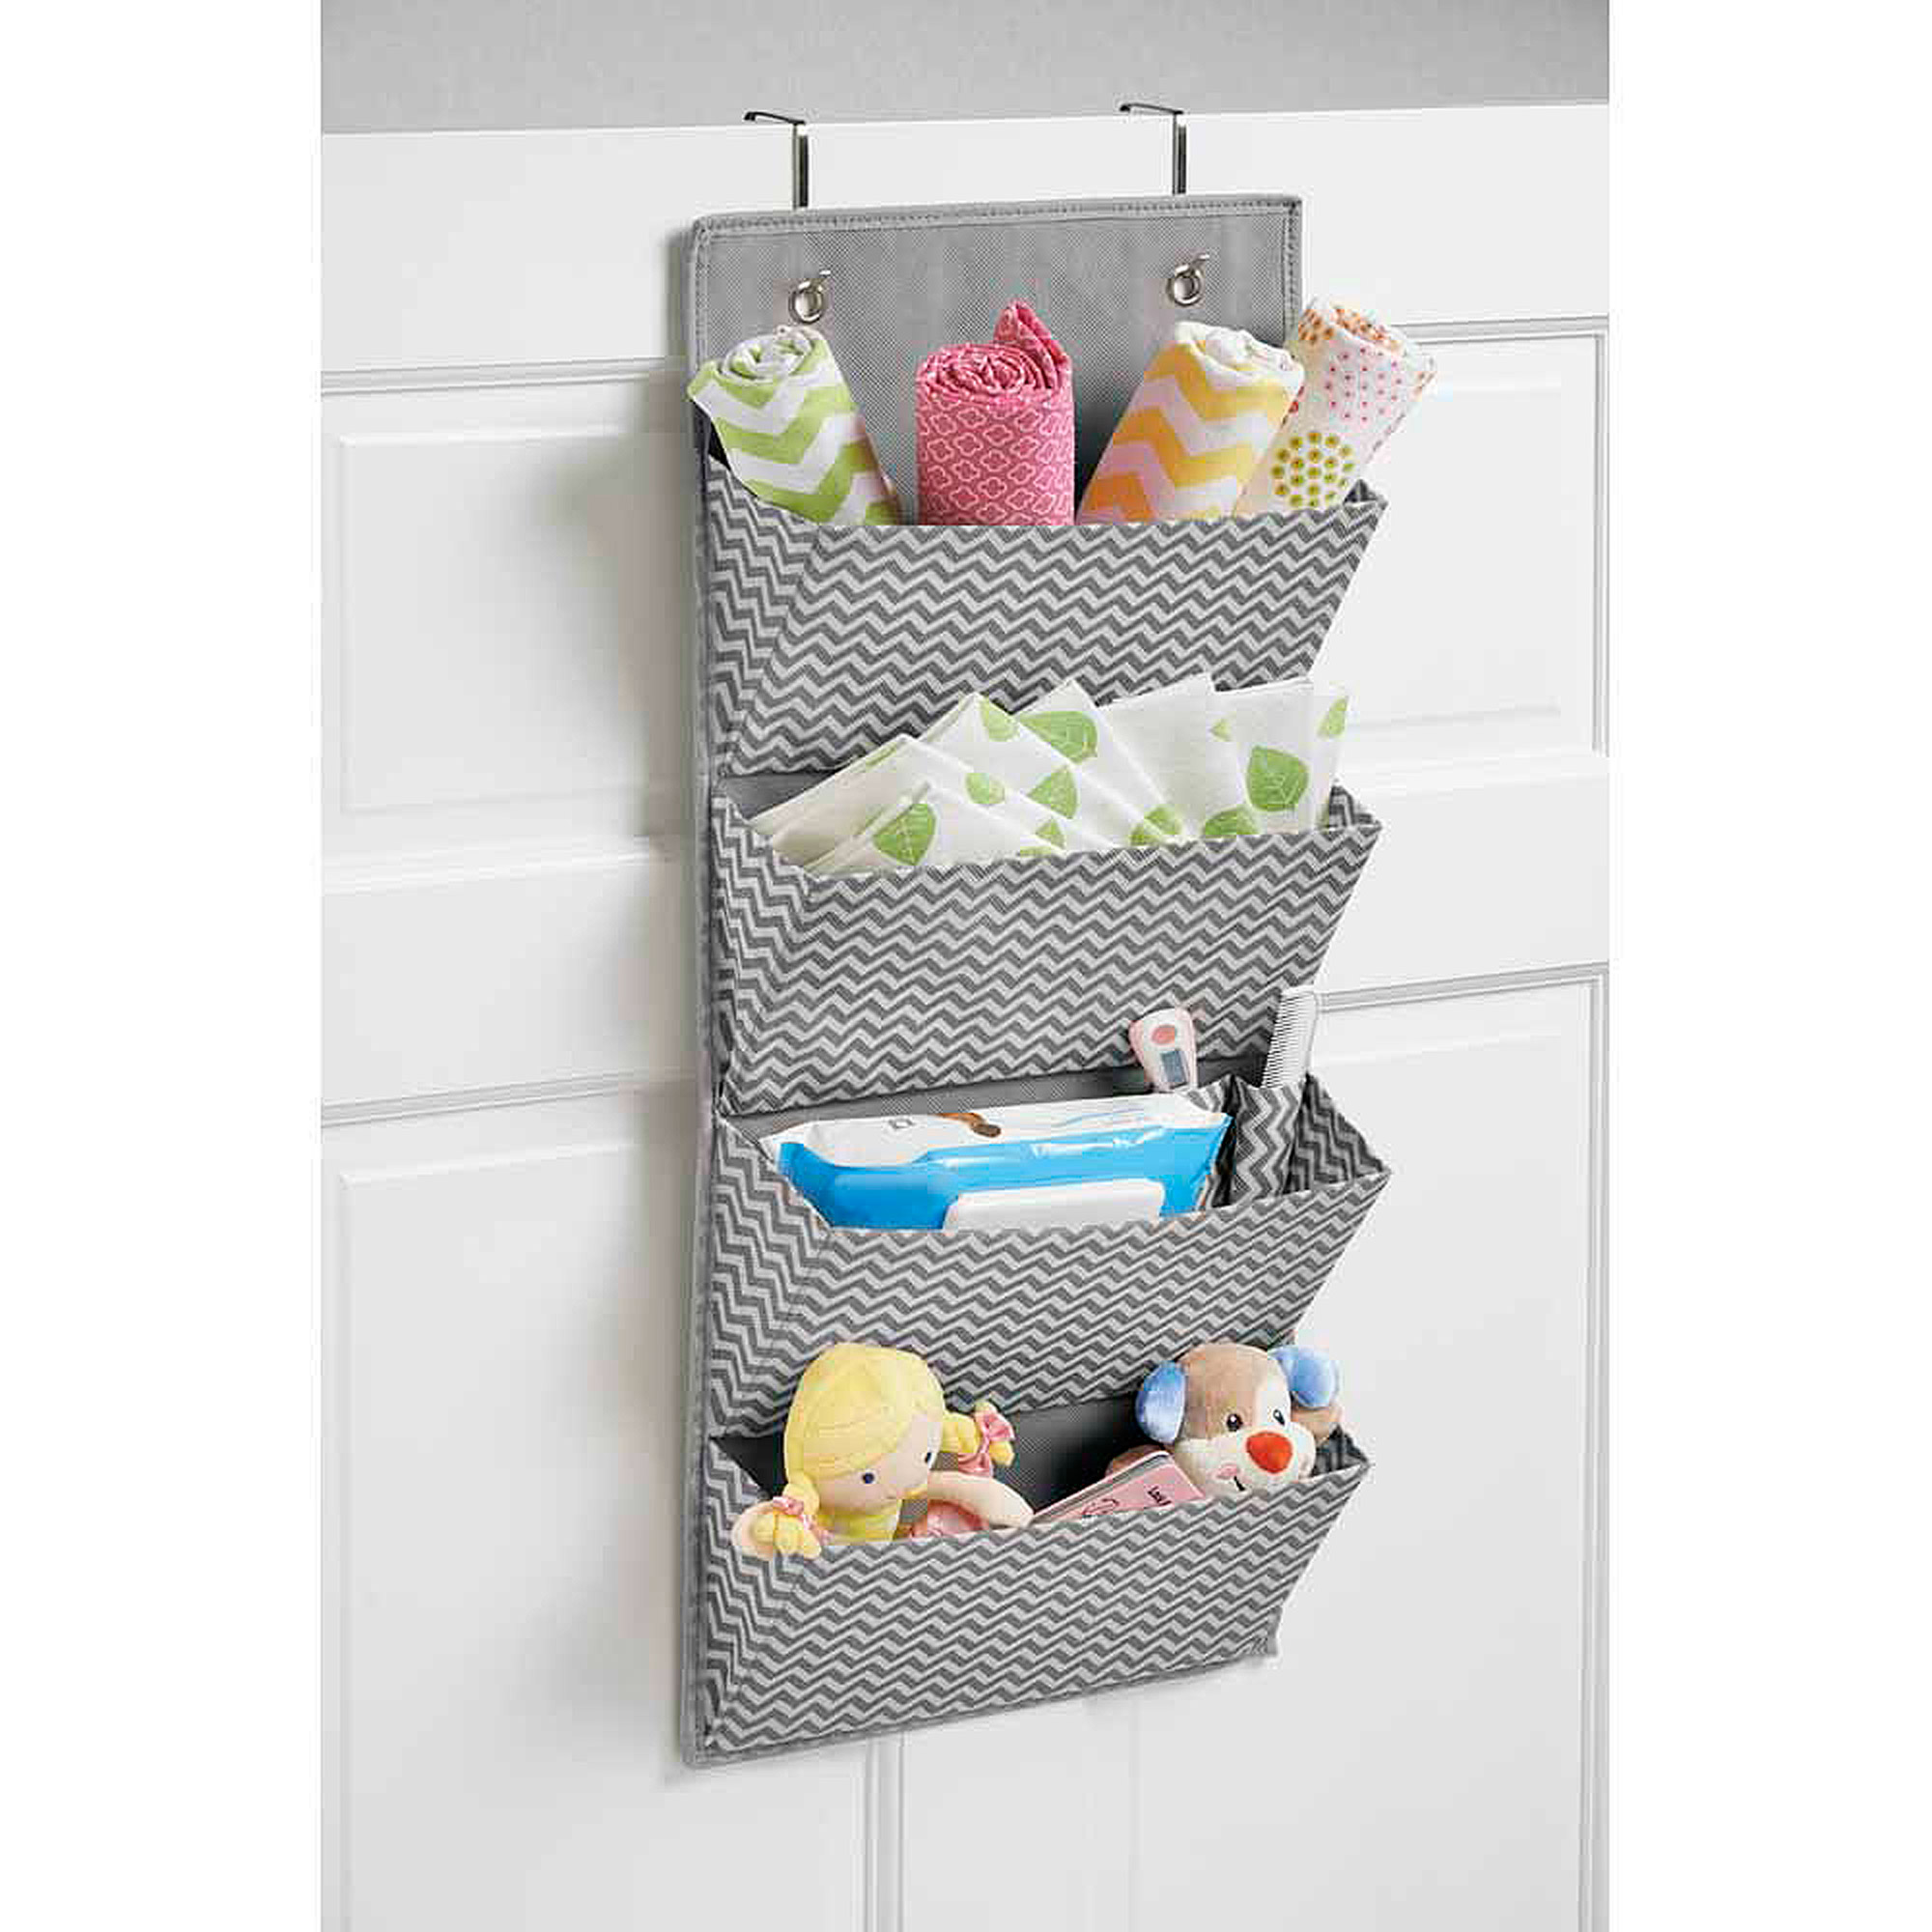 InterDesign Chevron Hanging 4Pocket Organizer Walmartcom